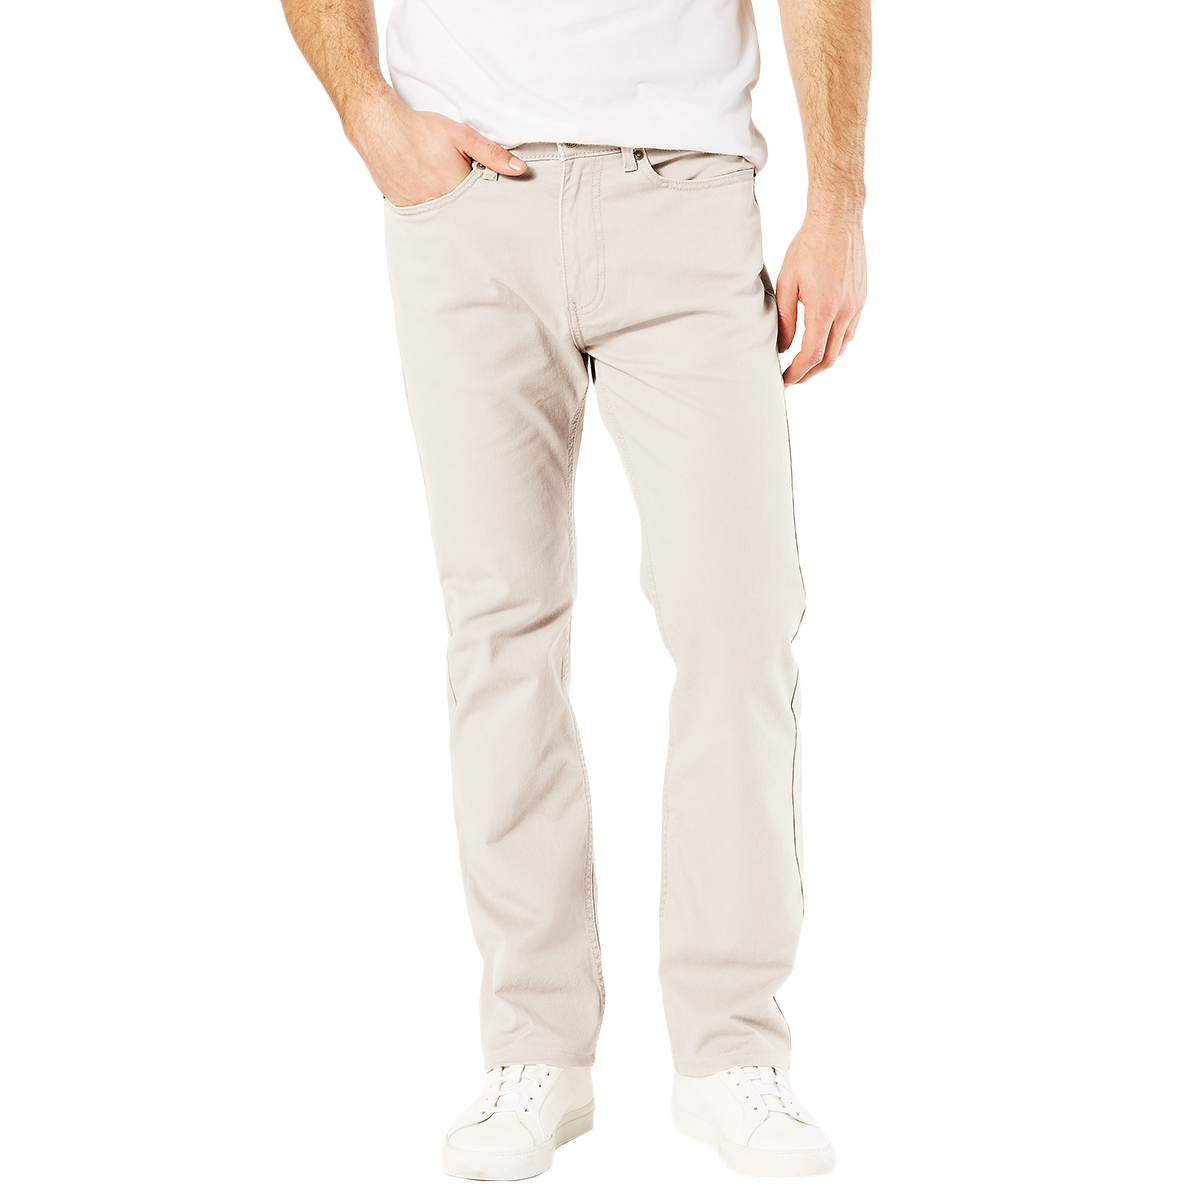 Dockers Men's Jean Cut 5-Pocket Straight Leg Twill Pants - Brown, 30/30